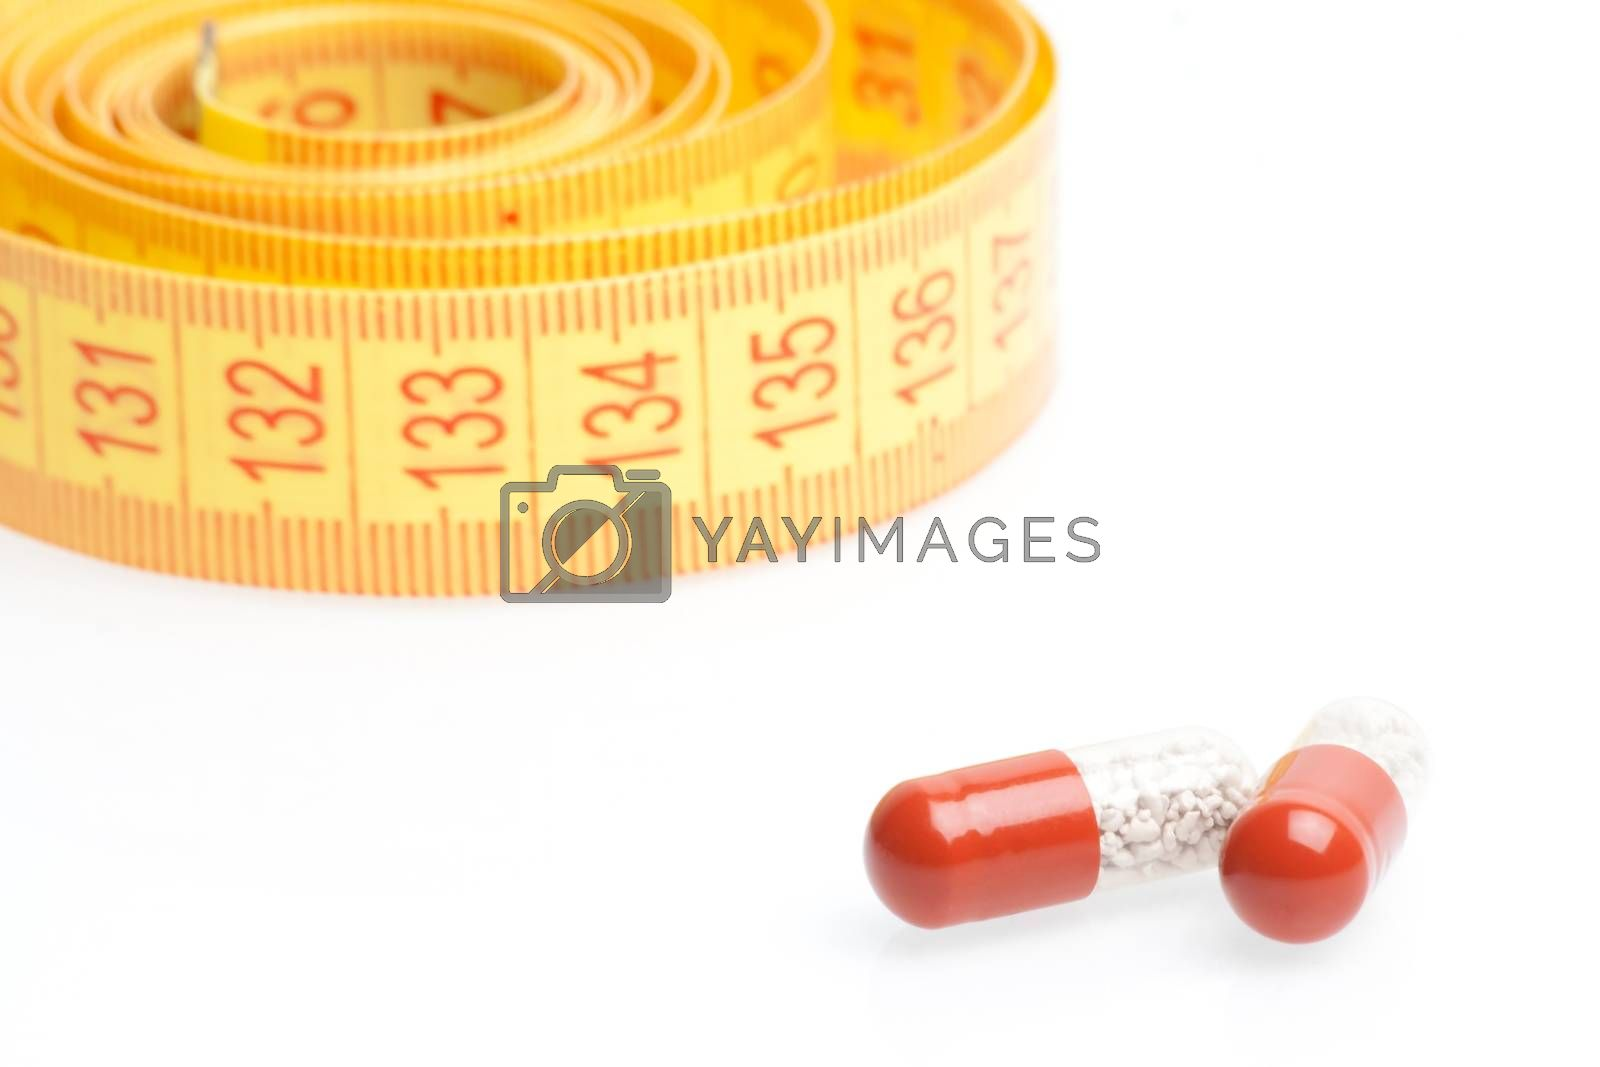 medical pills for dieting in front of measuring tape on a white background